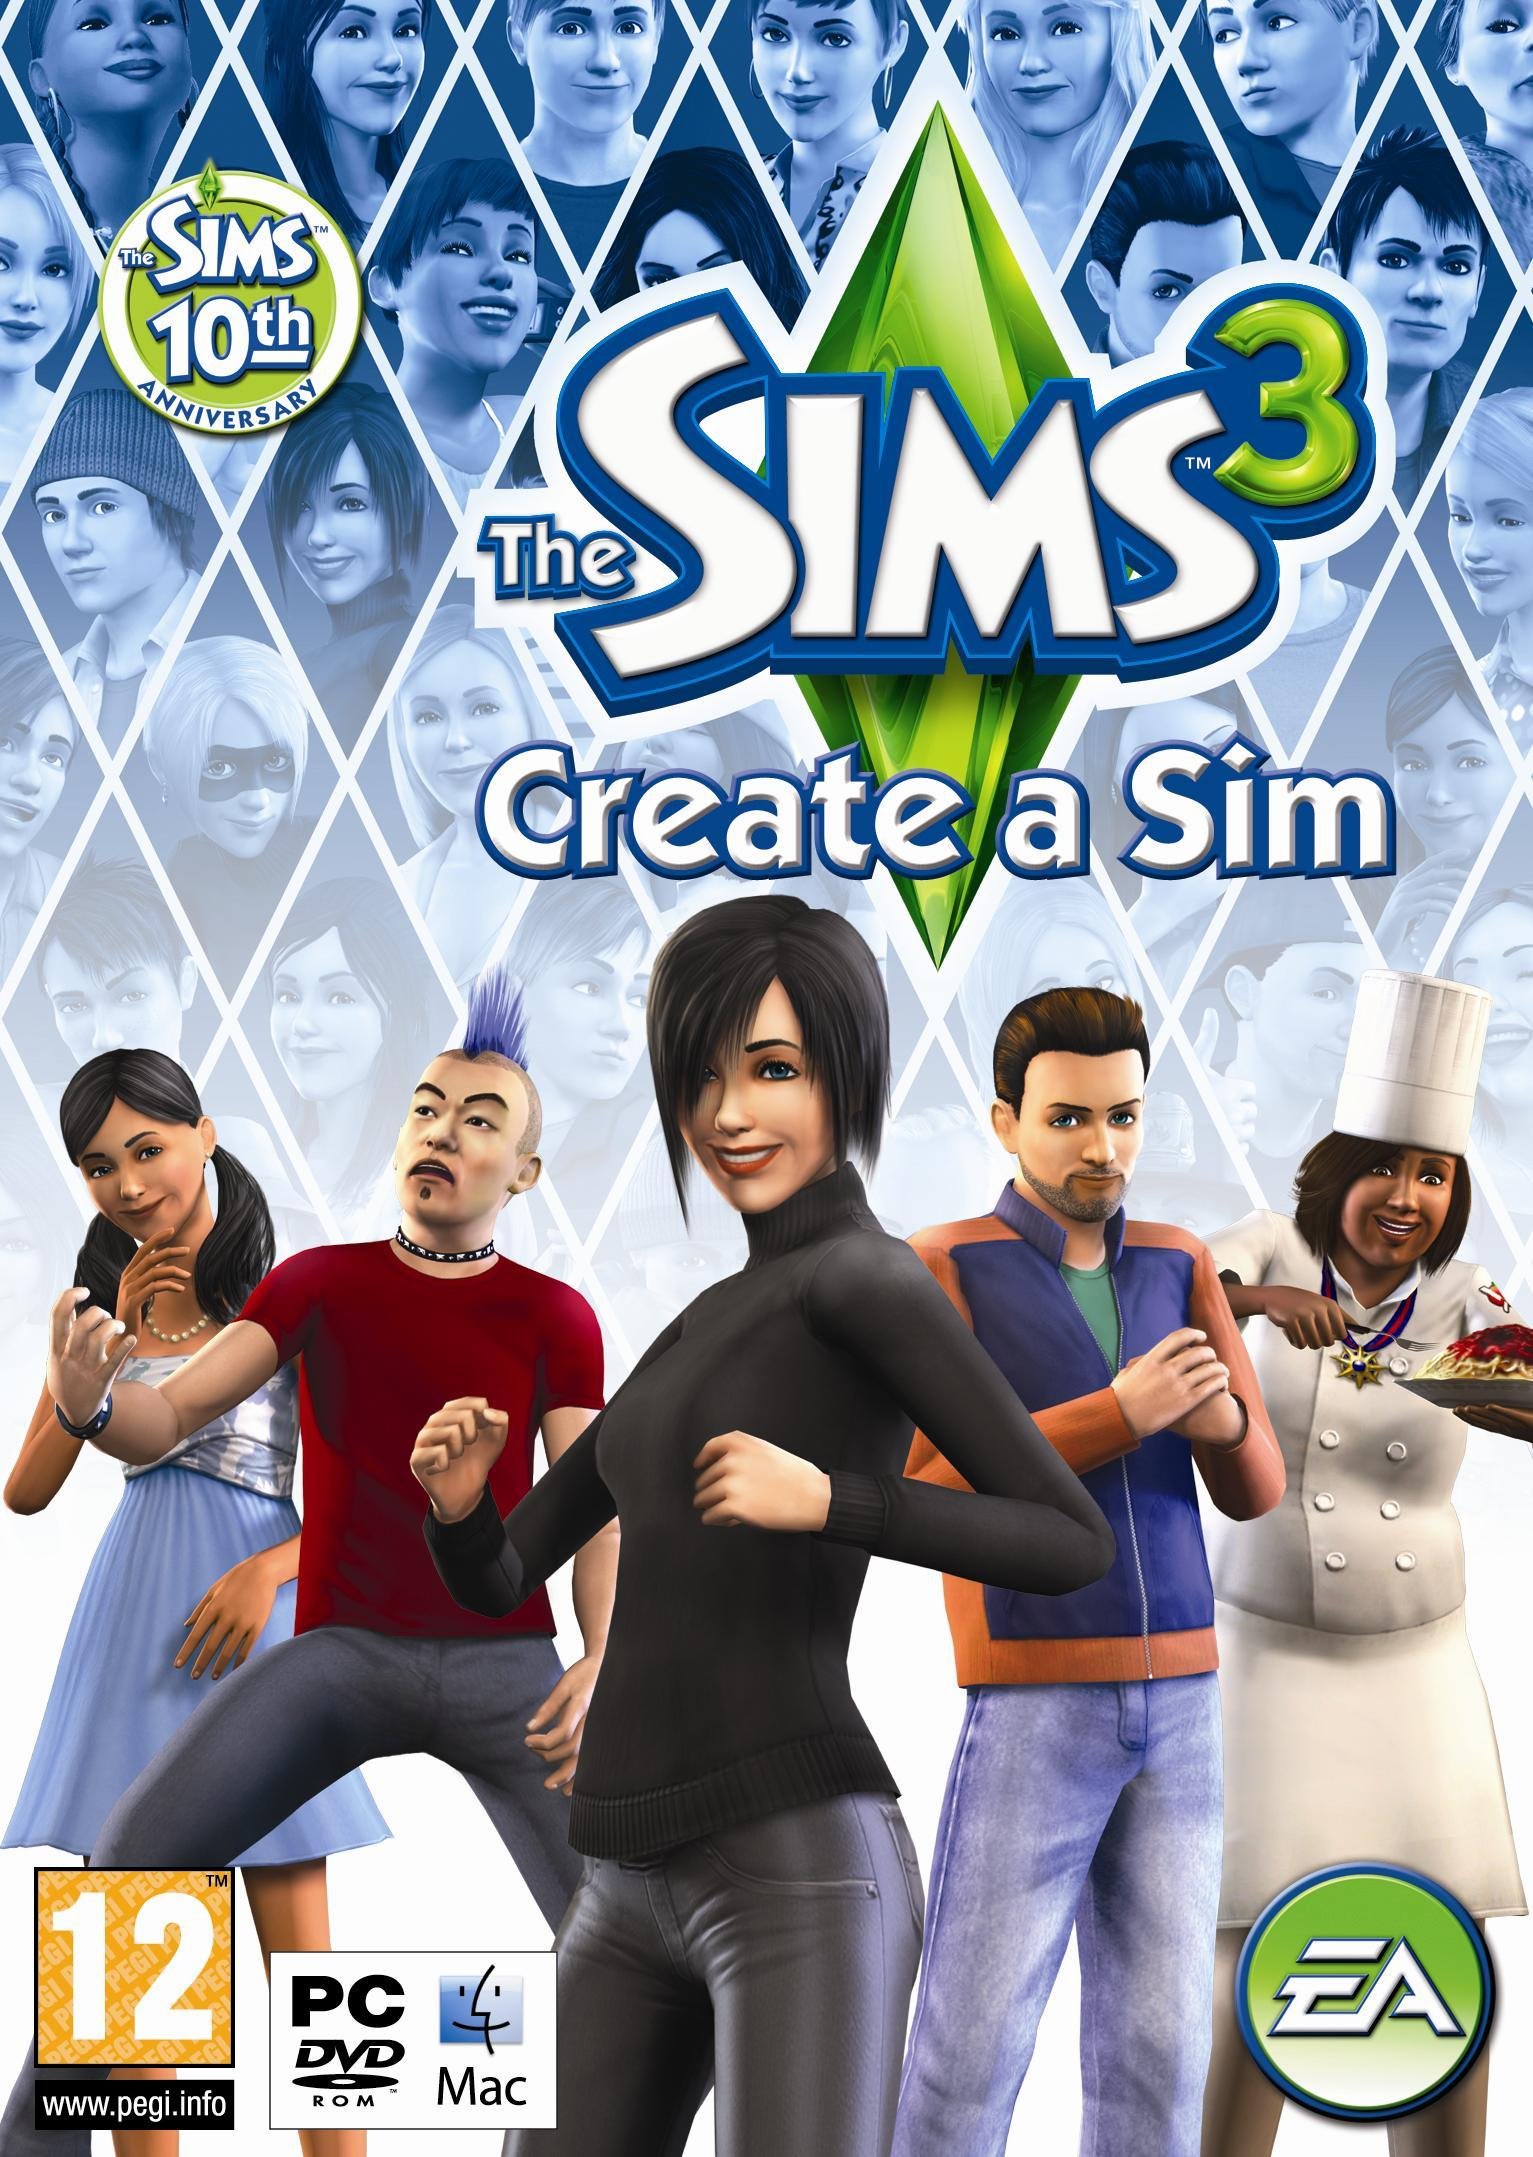 Image - The Sims 3 Cre...